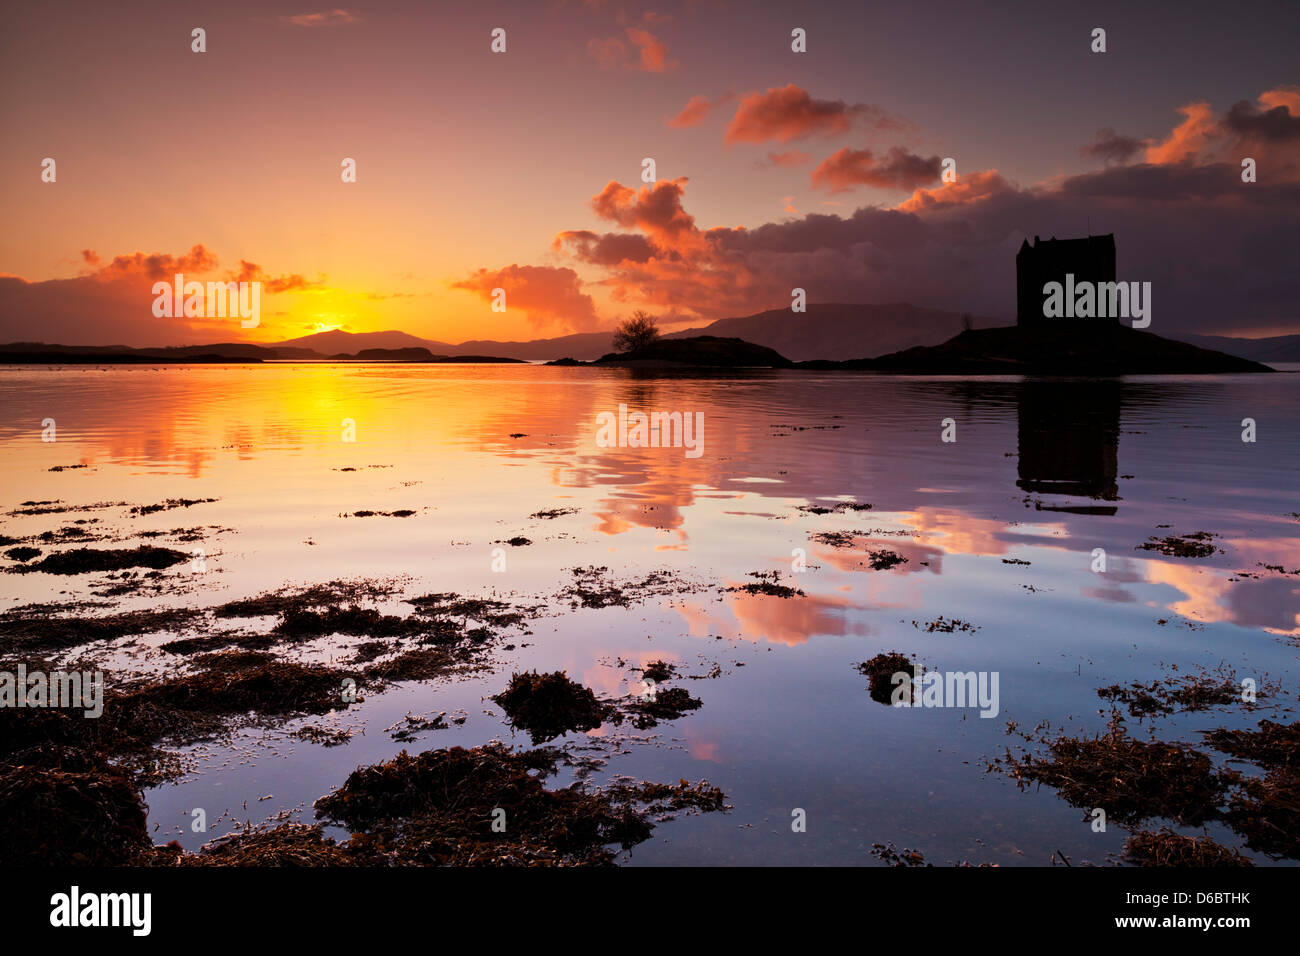 Silhouette at sunset of Castle Stalker Loch Laich Loch Linnhe Port Appin Argyll Scotland scottish highlands, UK, - Stock Image